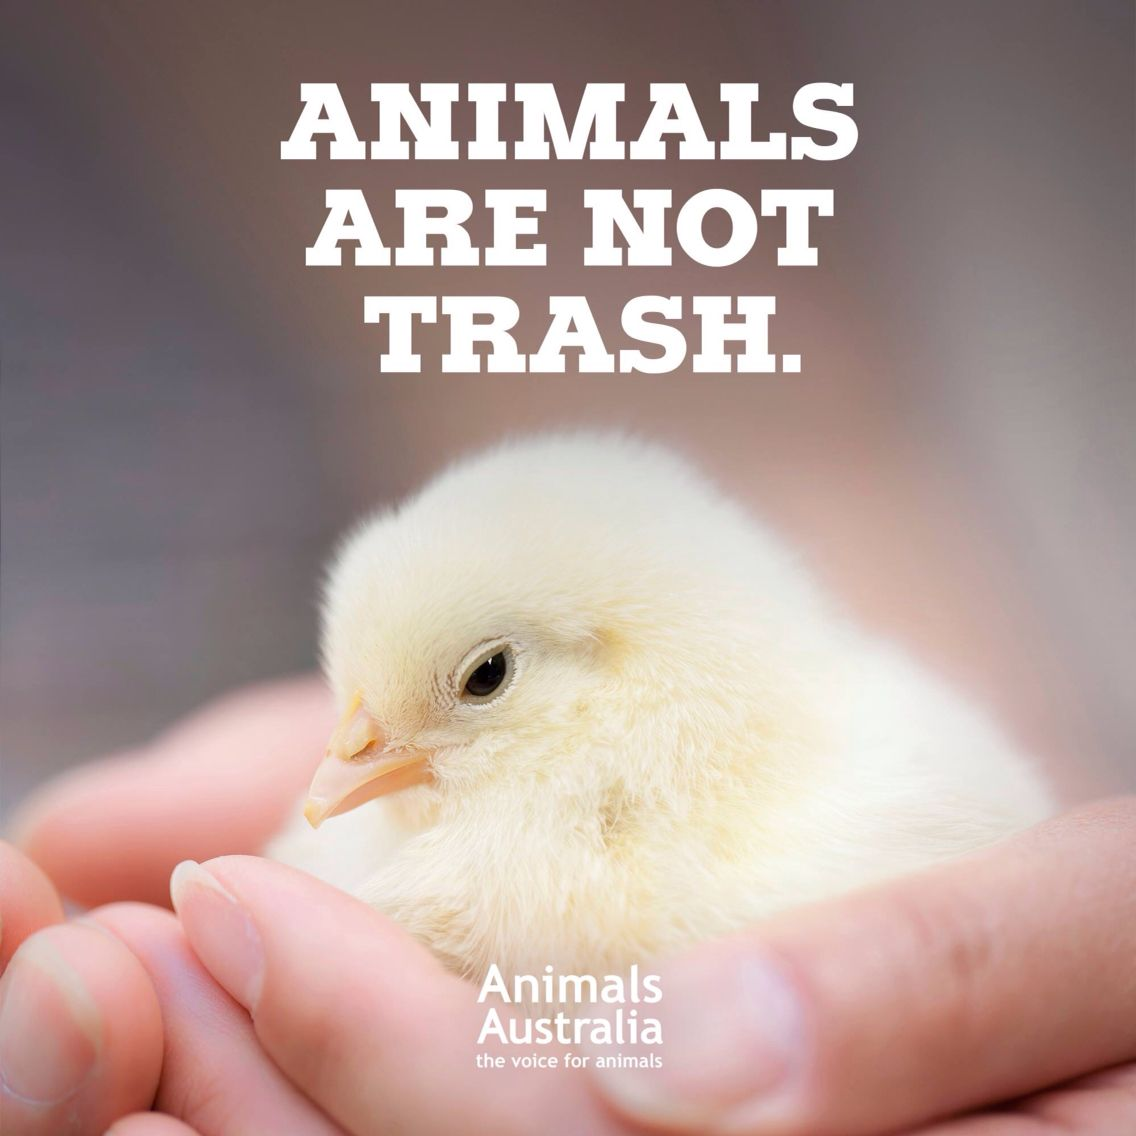 millions of male baby chicks are destroyed every day in a garbage